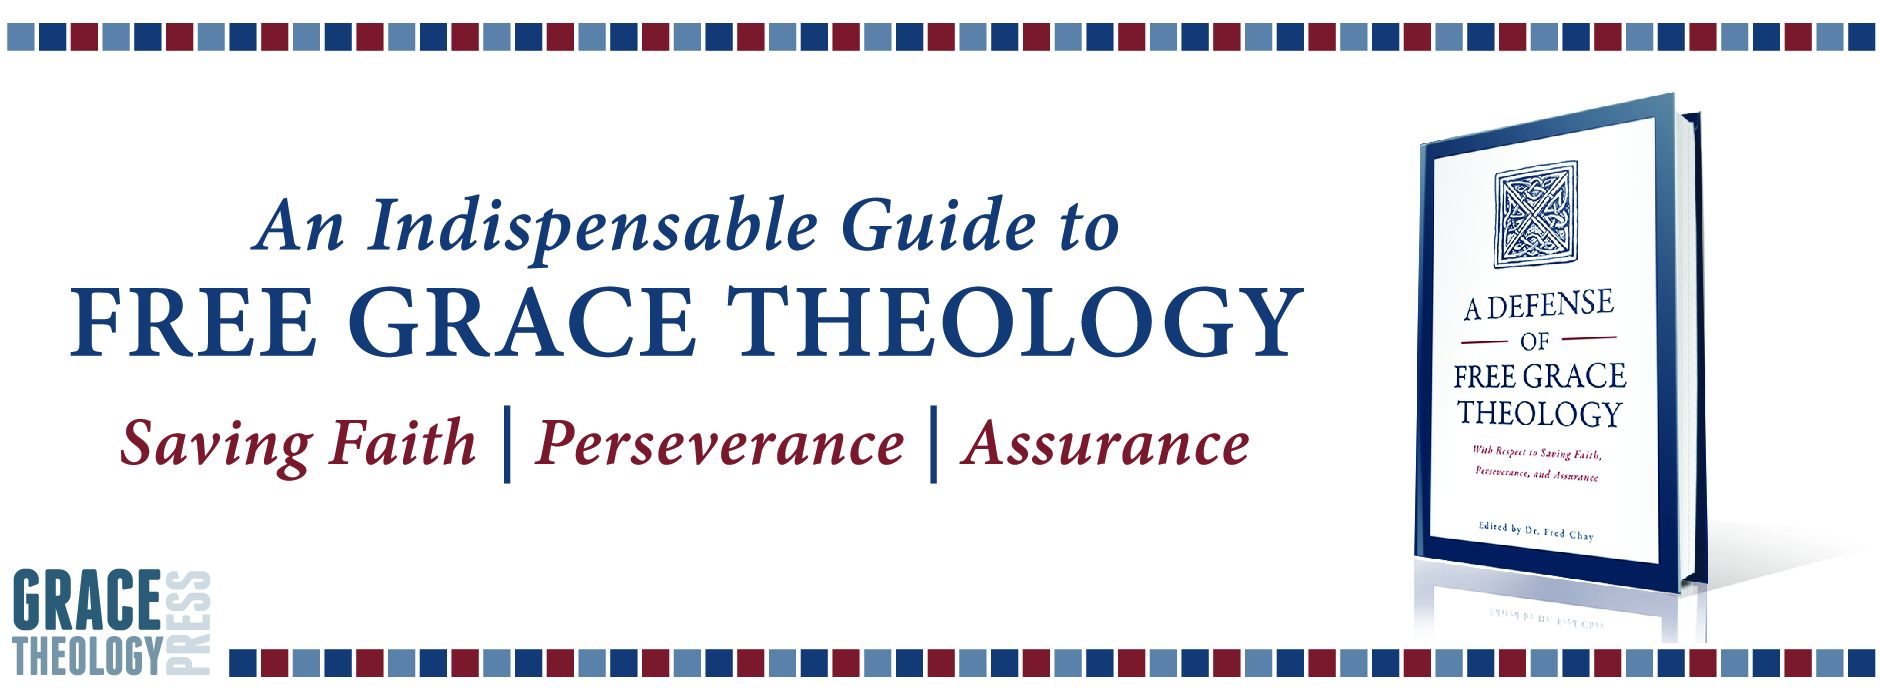 A Defense of Free Grace Theology-2